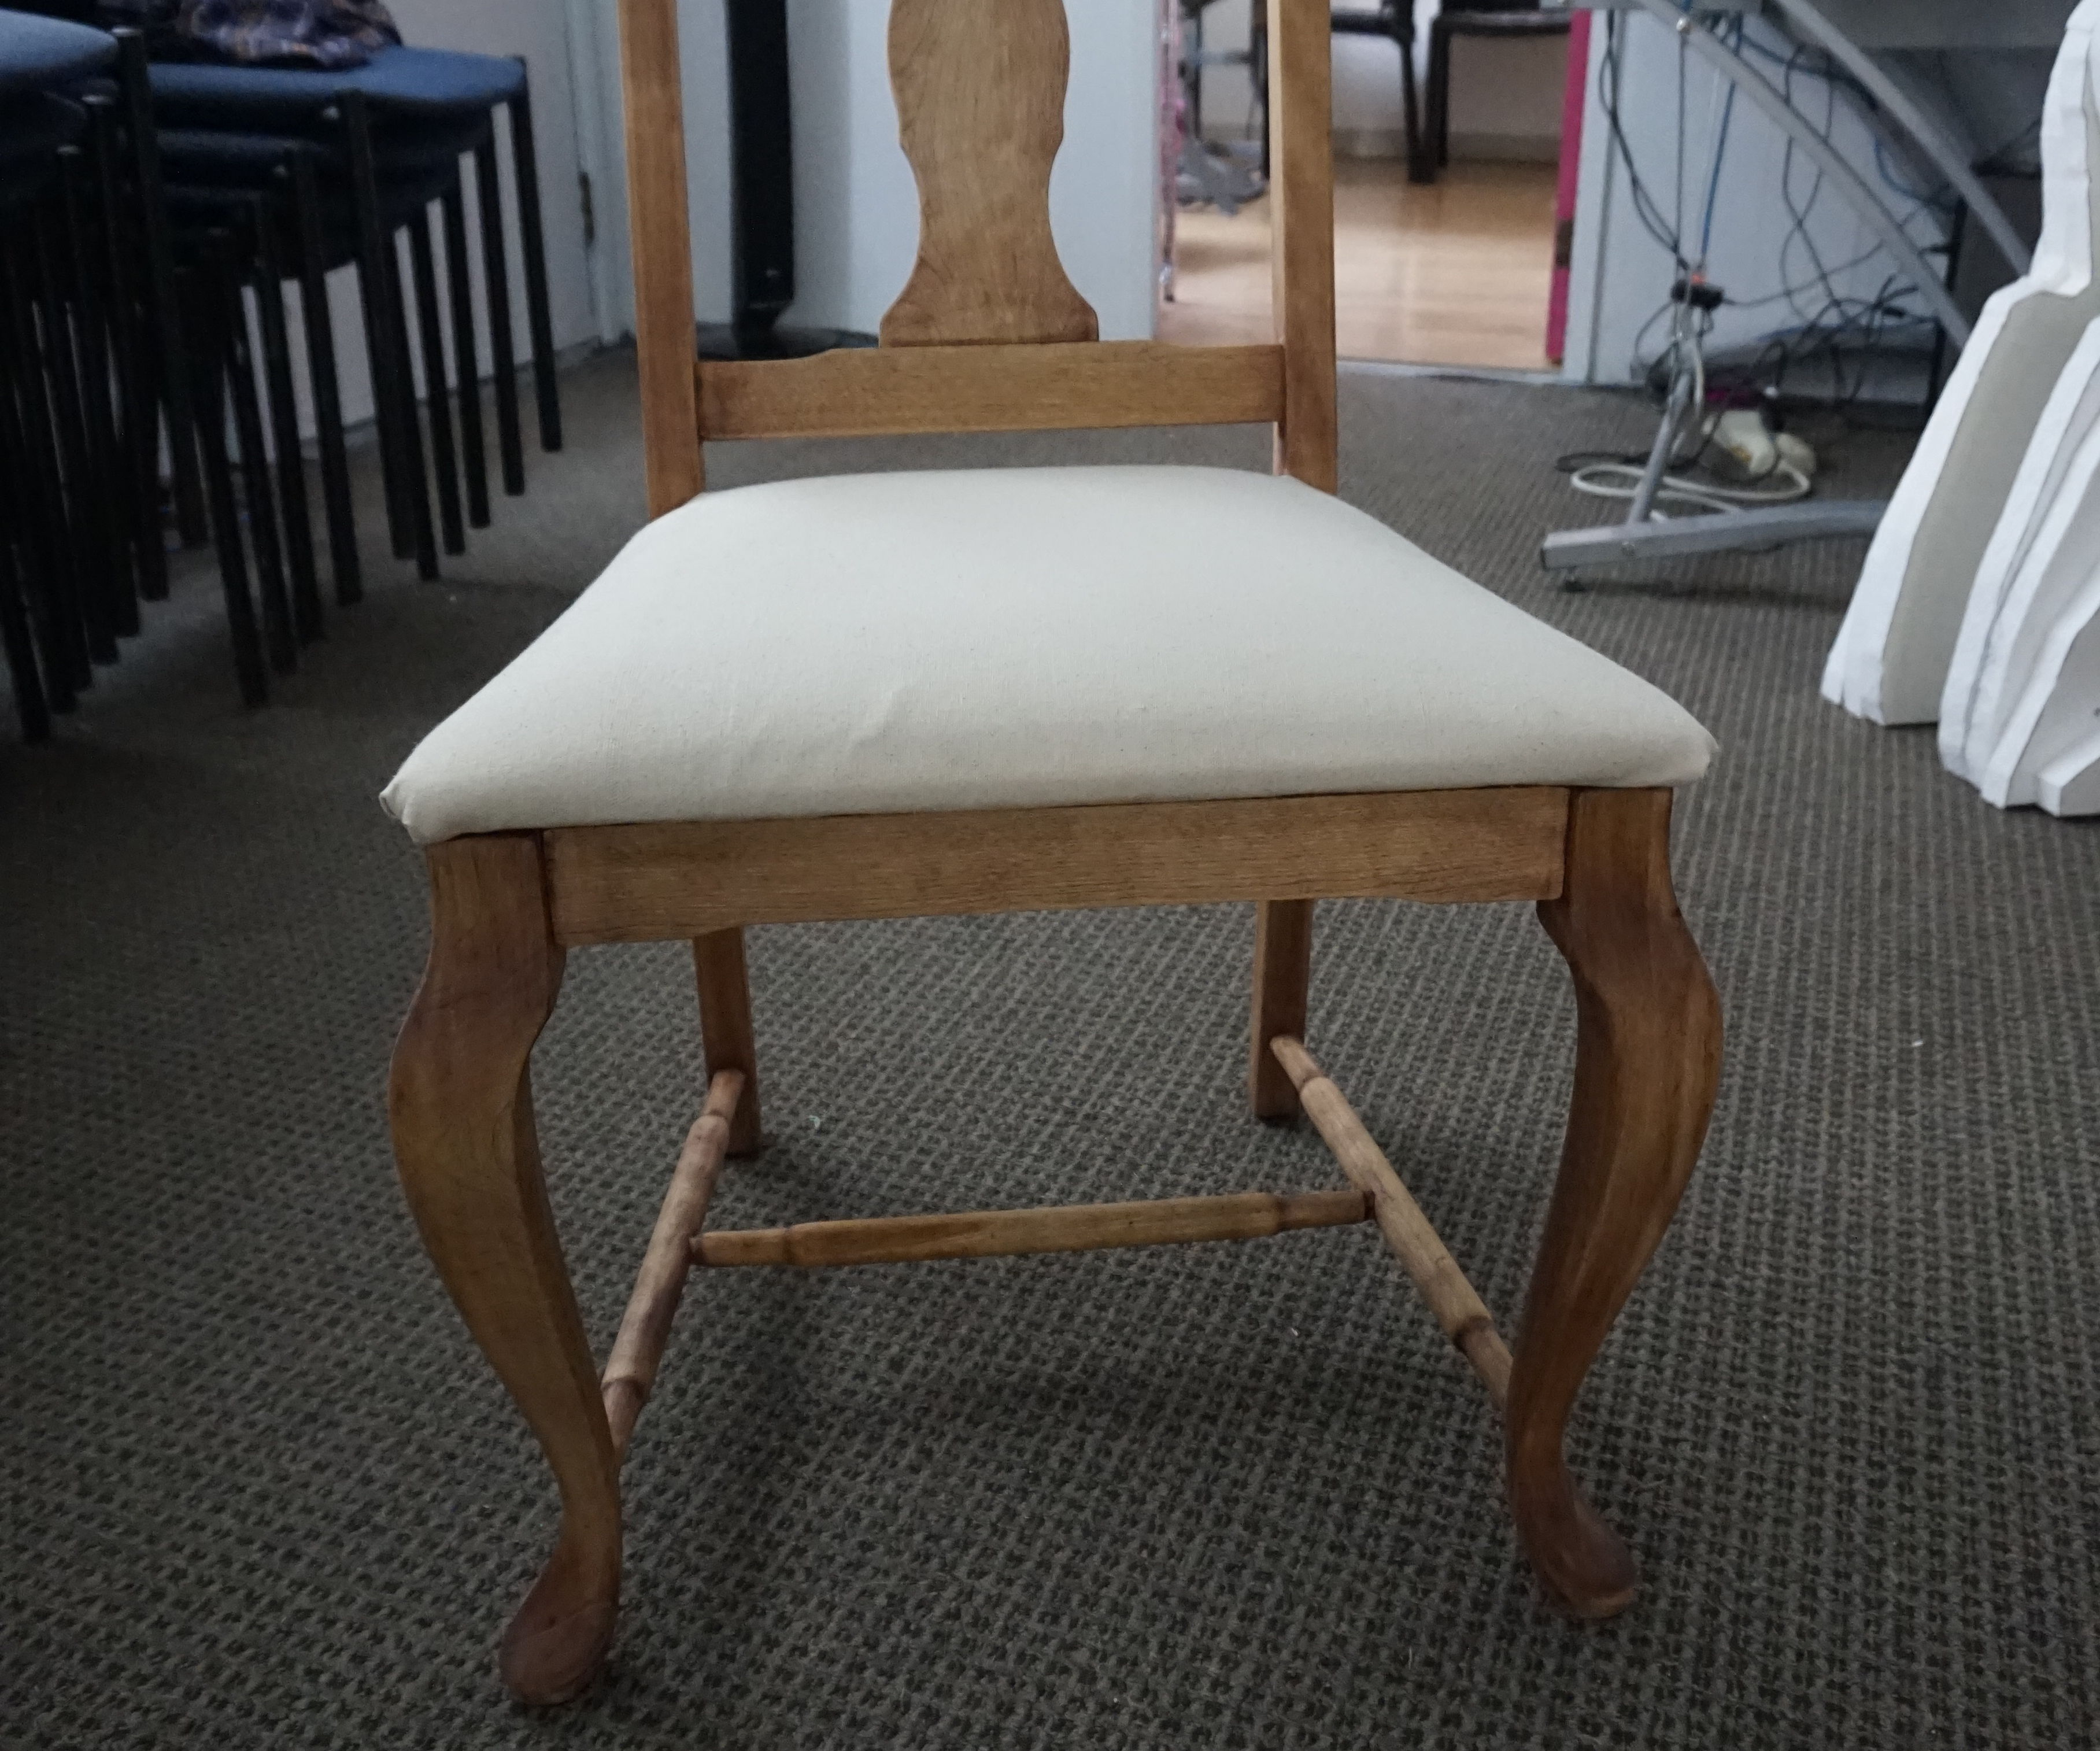 Chair refinishing and seat recovering